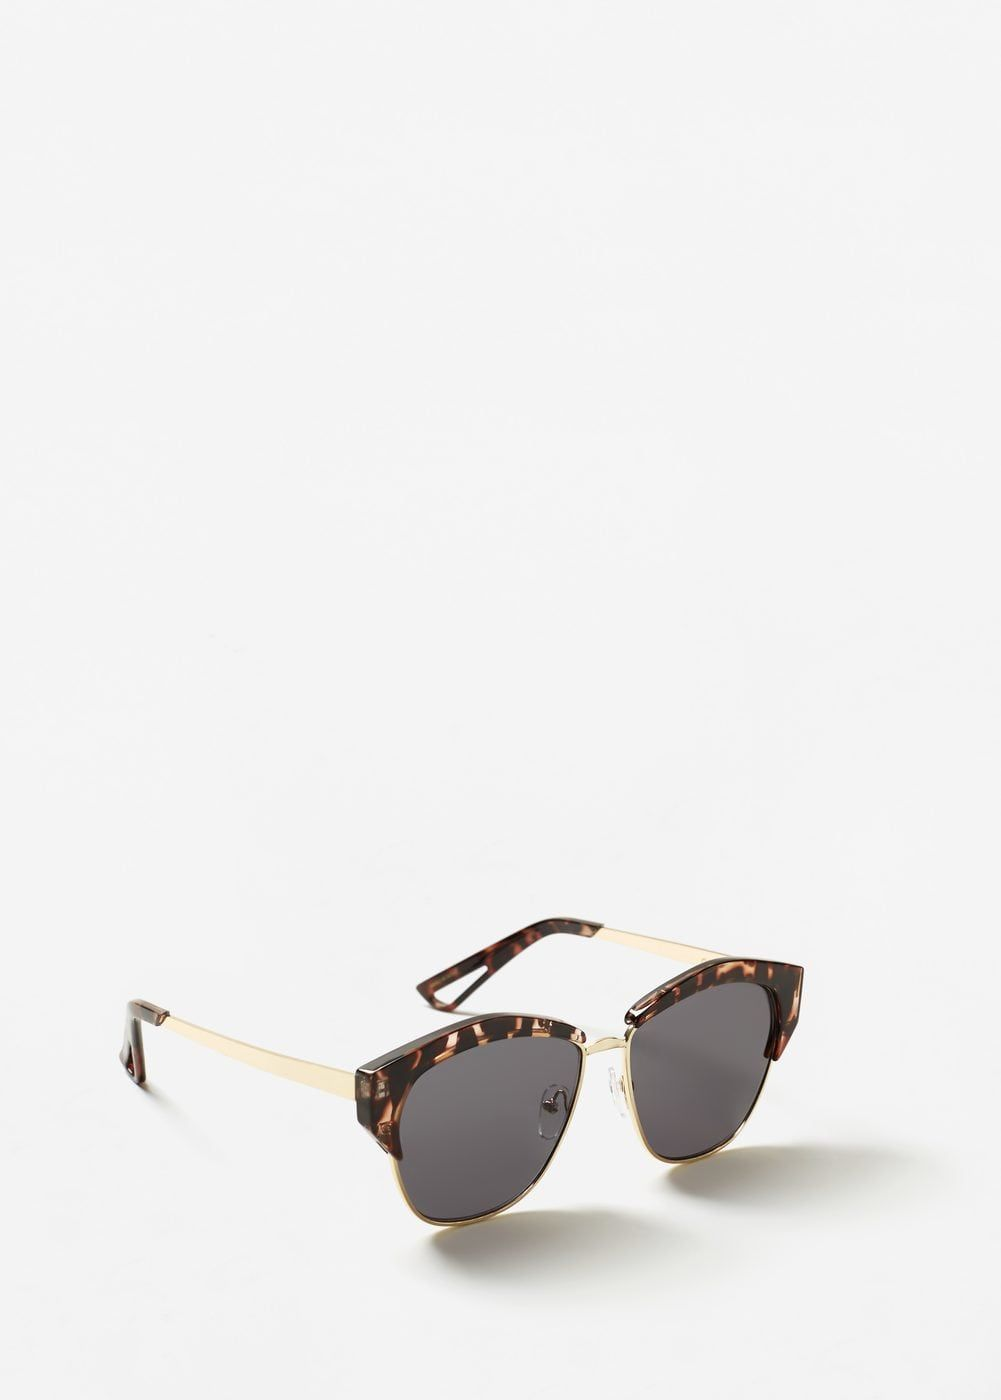 b9a4c81c9201 Tortoiseshell retro sunglasses - Women | Wish list | Sunglasses ...